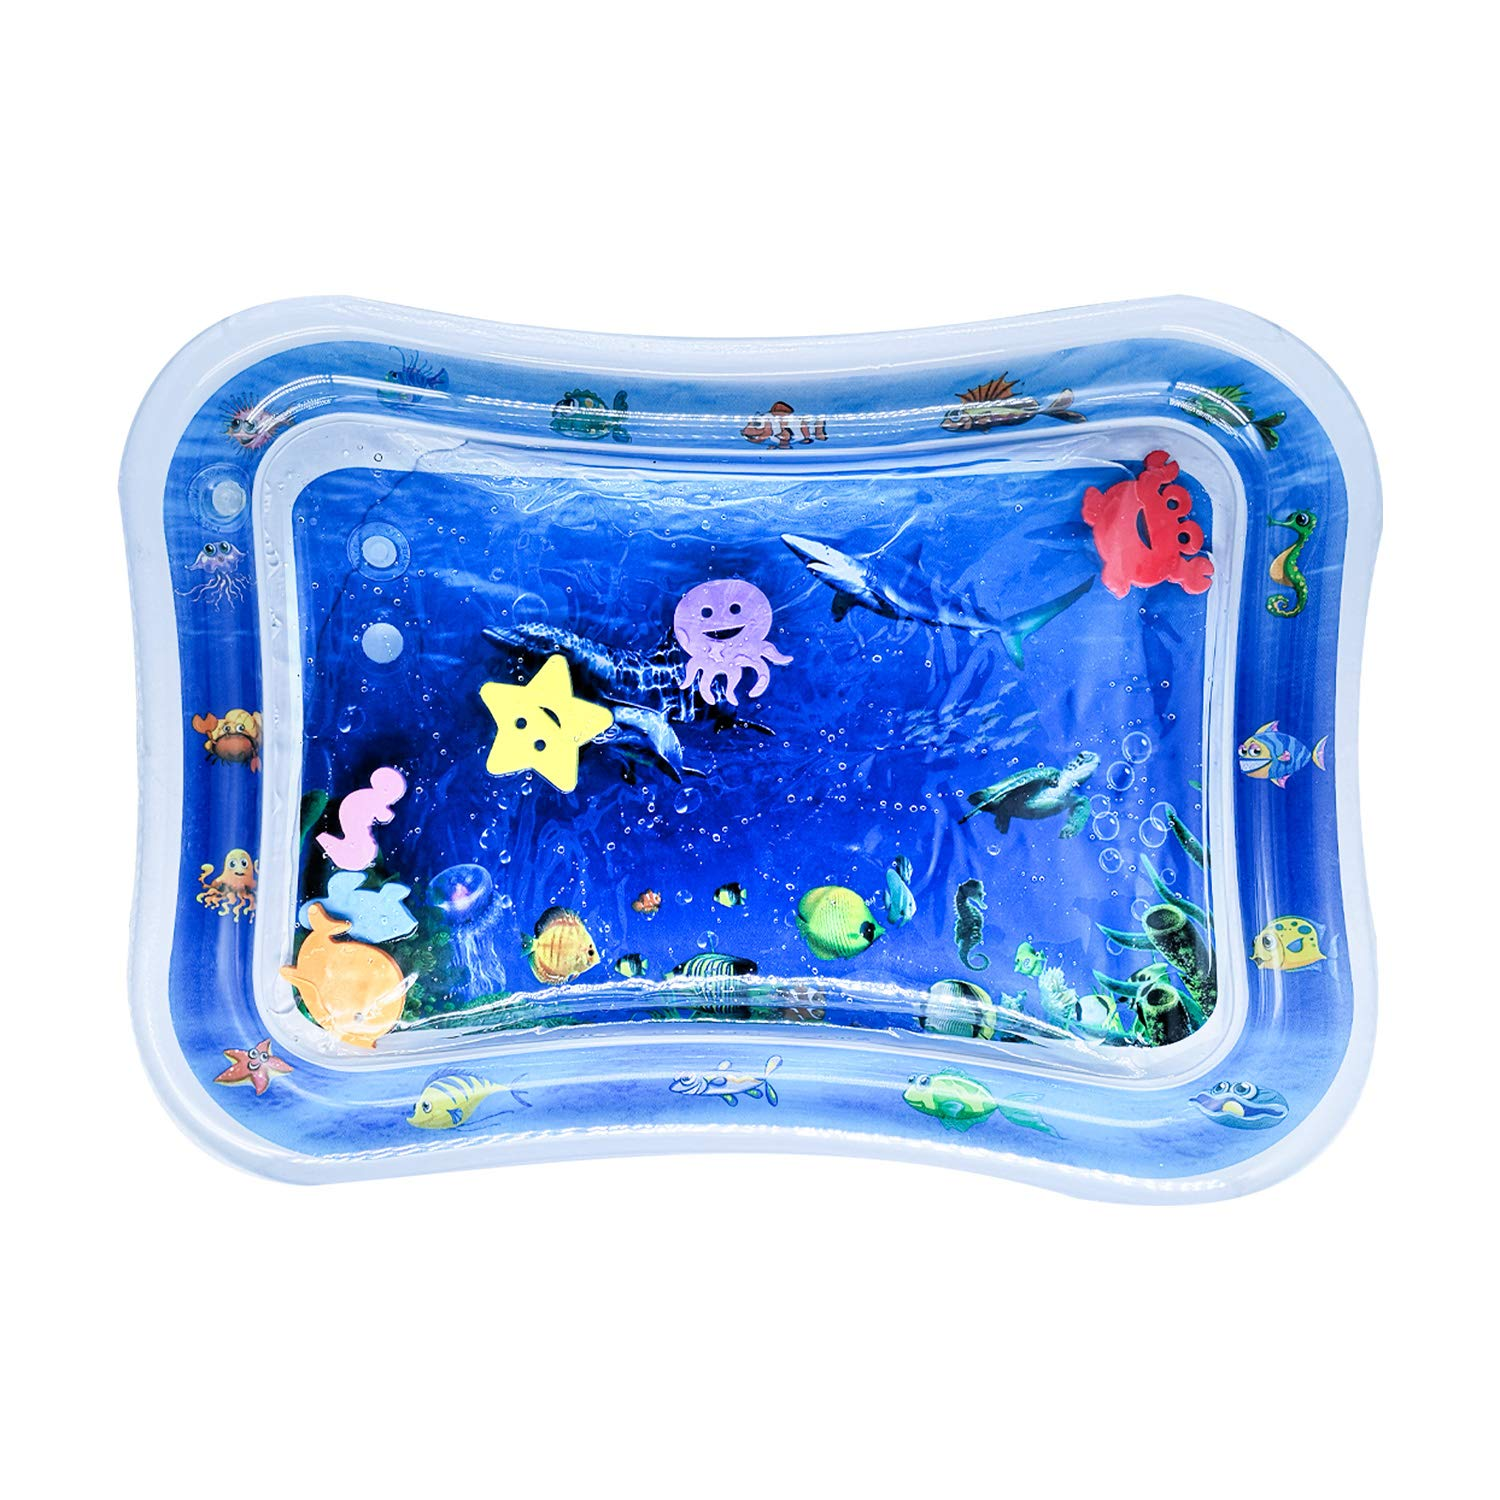 PHYLES Inflatable Water Play Mat , baby play mat,Tummy Time Toys for Stimulation Growth, BPA Free, Nontoxic, Leakproof, kids'Activity Center